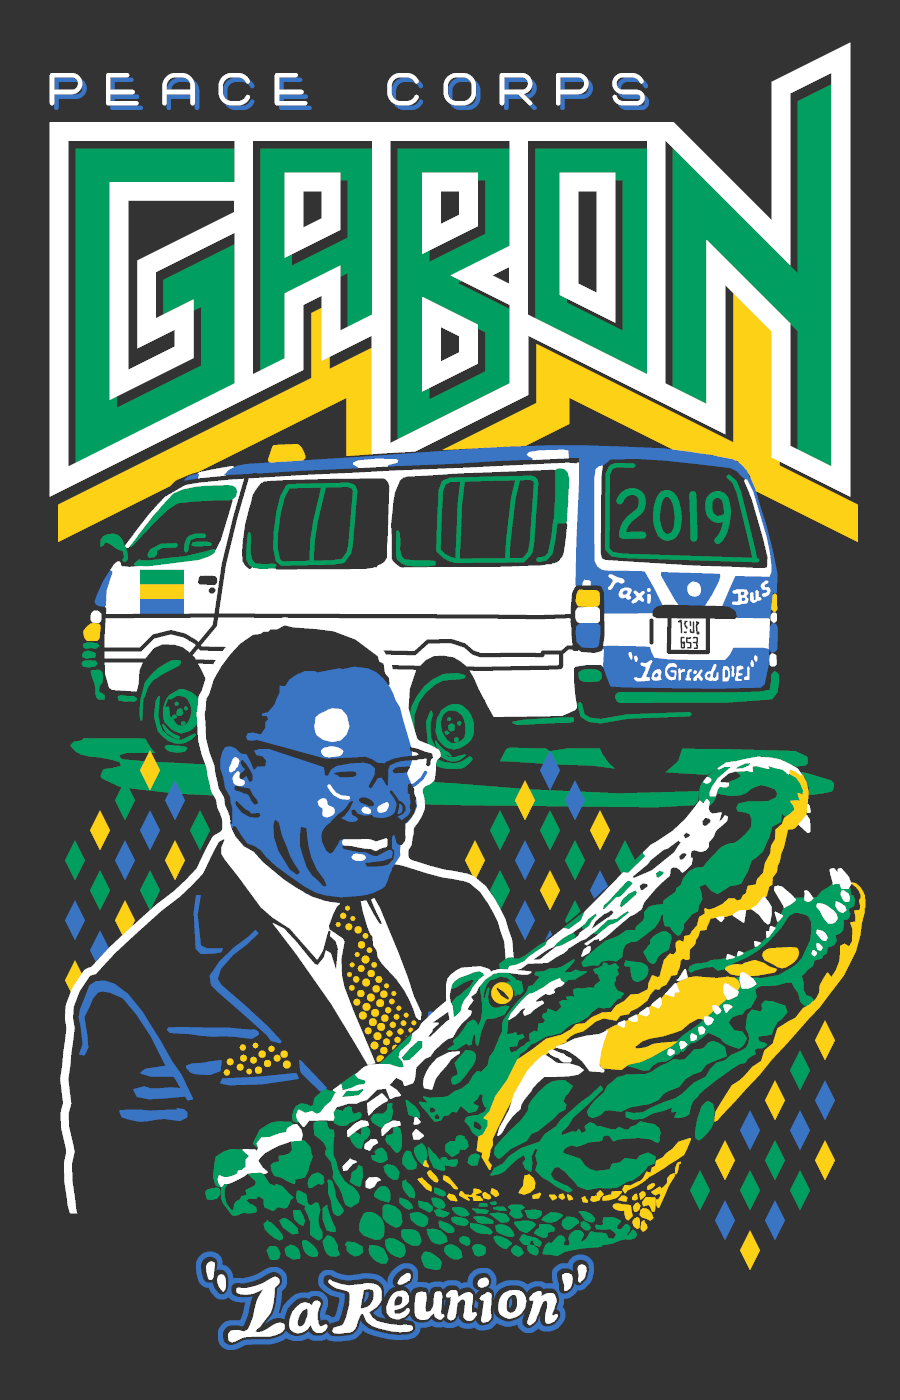 A t-shirt design image featuring the word Gabon in angular rock-n-roll letters, an African minivan taxi, the former president of Gabon Omar Bongo, and a large alligator.